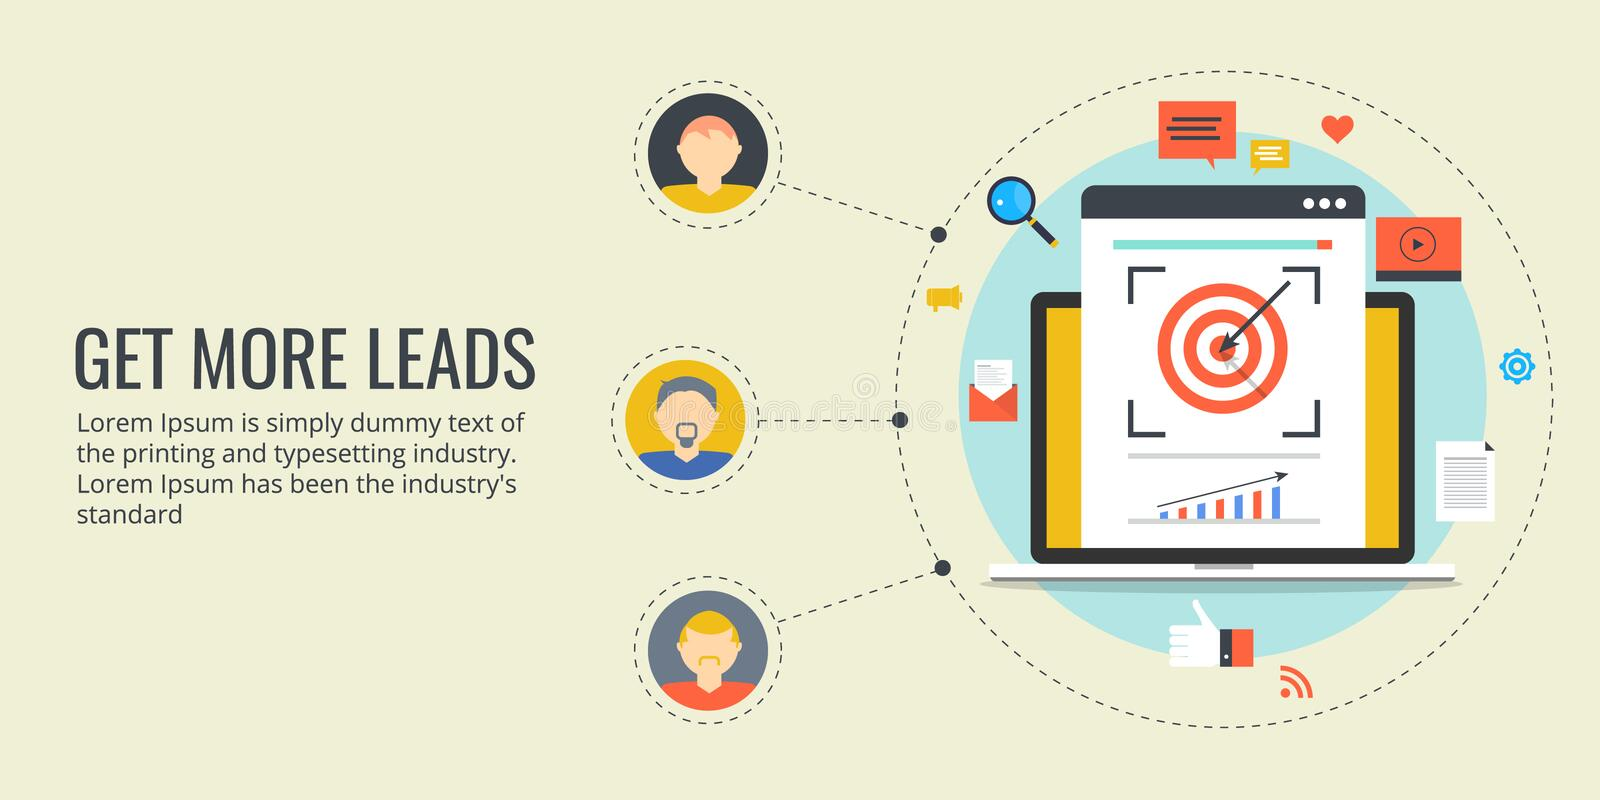 Get more leads - online lead generation process. Flat design marketing banner. stock illustration